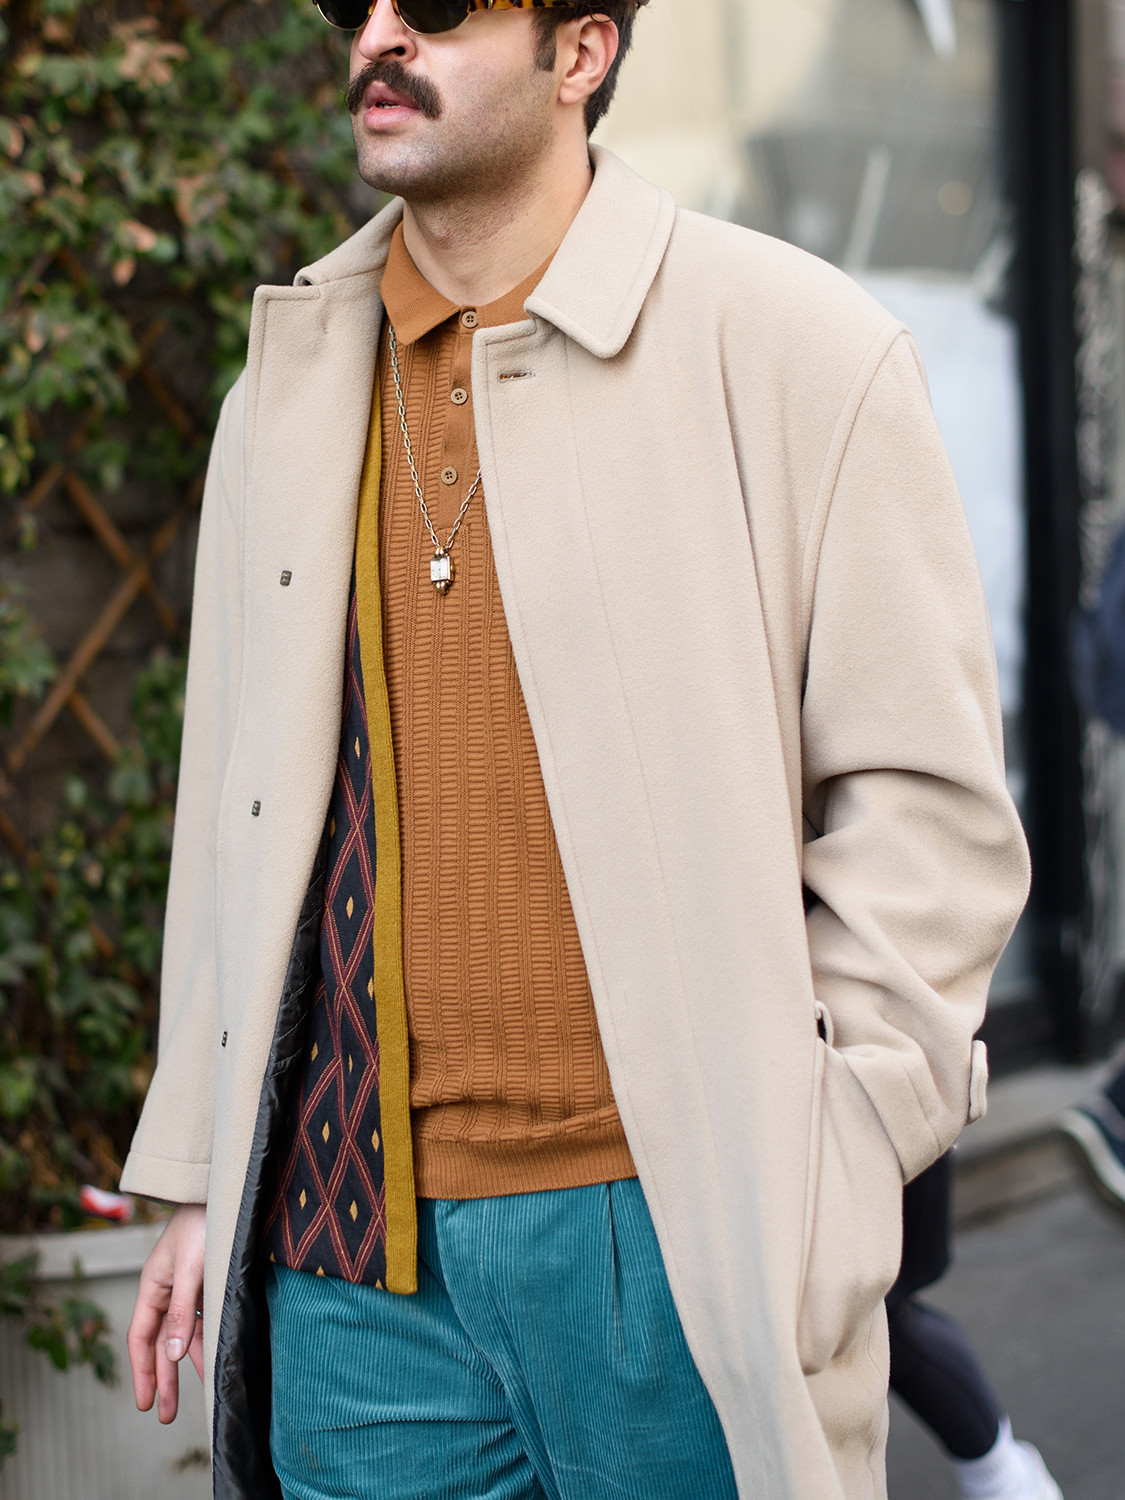 Men's outfit idea for 2021 with camel coat, brown long-sleeved polo, blue chinos, tortoiseshell sunglasses, oxford / derby shoes. Suitable for autumn and winter.